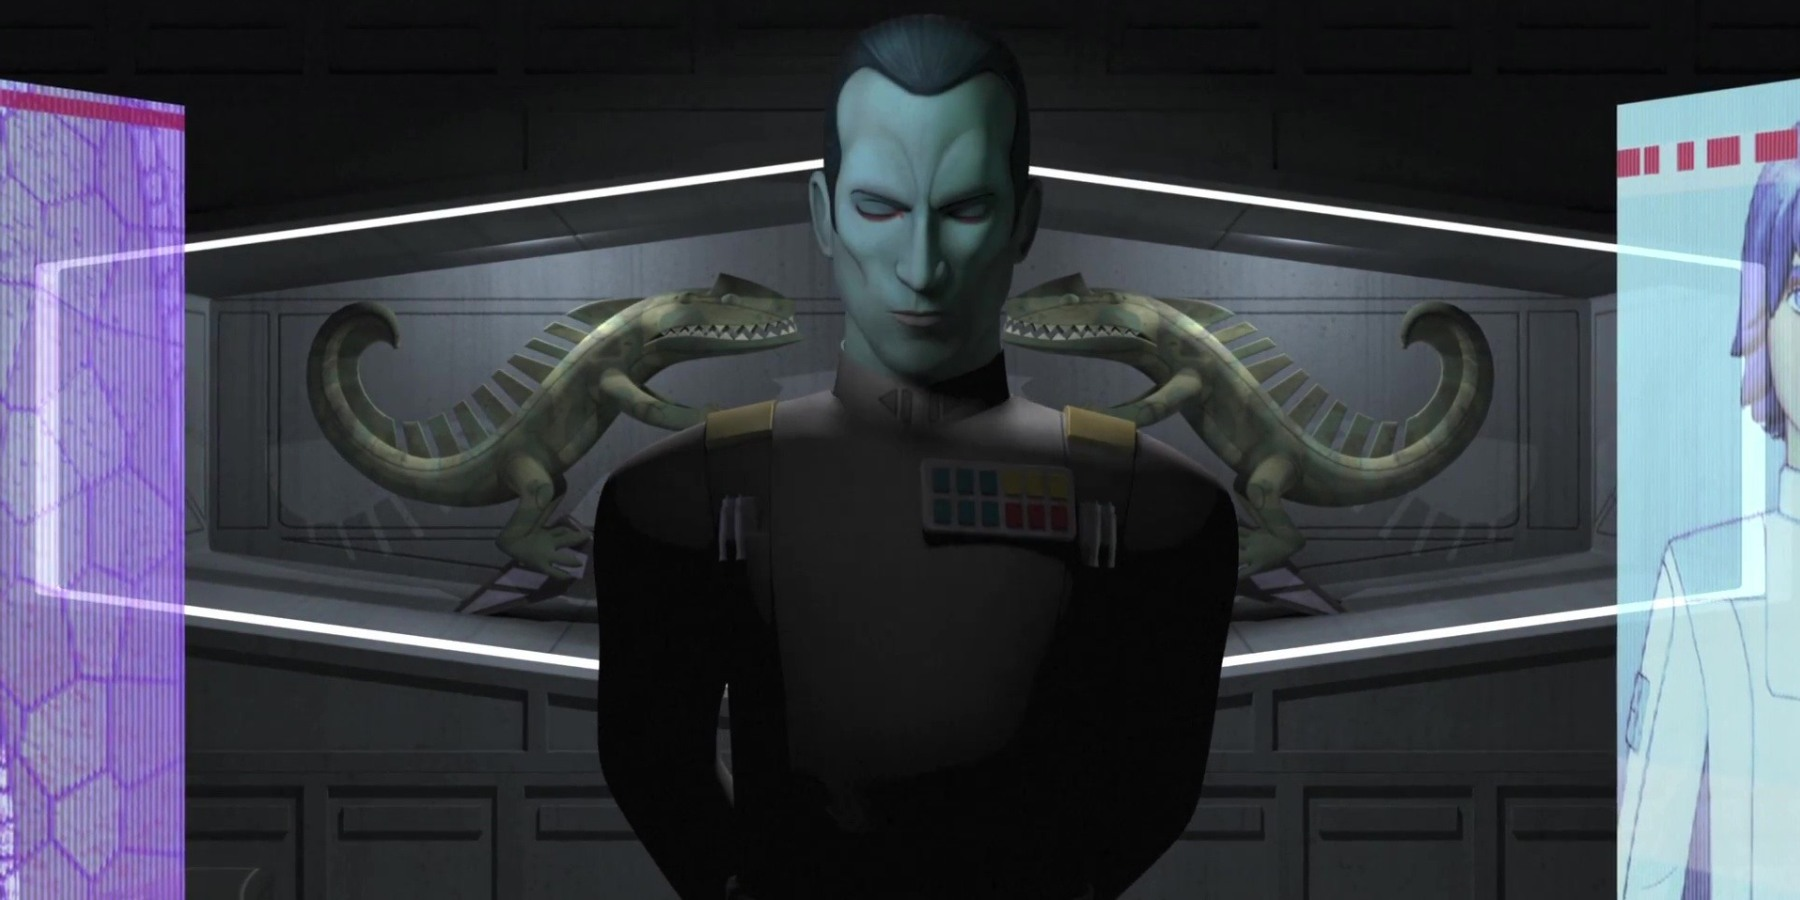 Admiral Thrawn from Star Wars Rebels